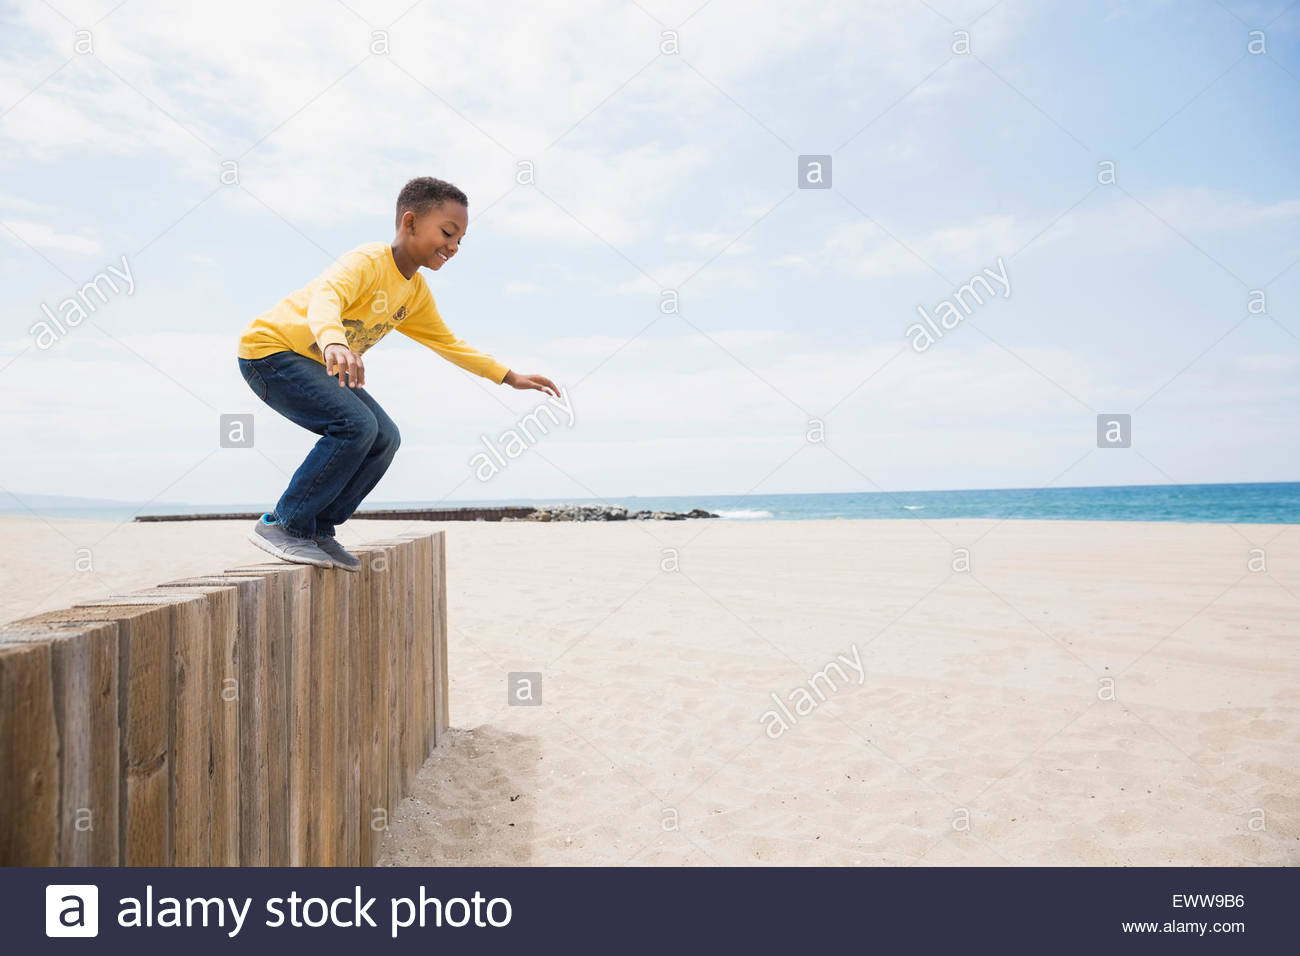 Boy jumping from beach wall - Stock Image